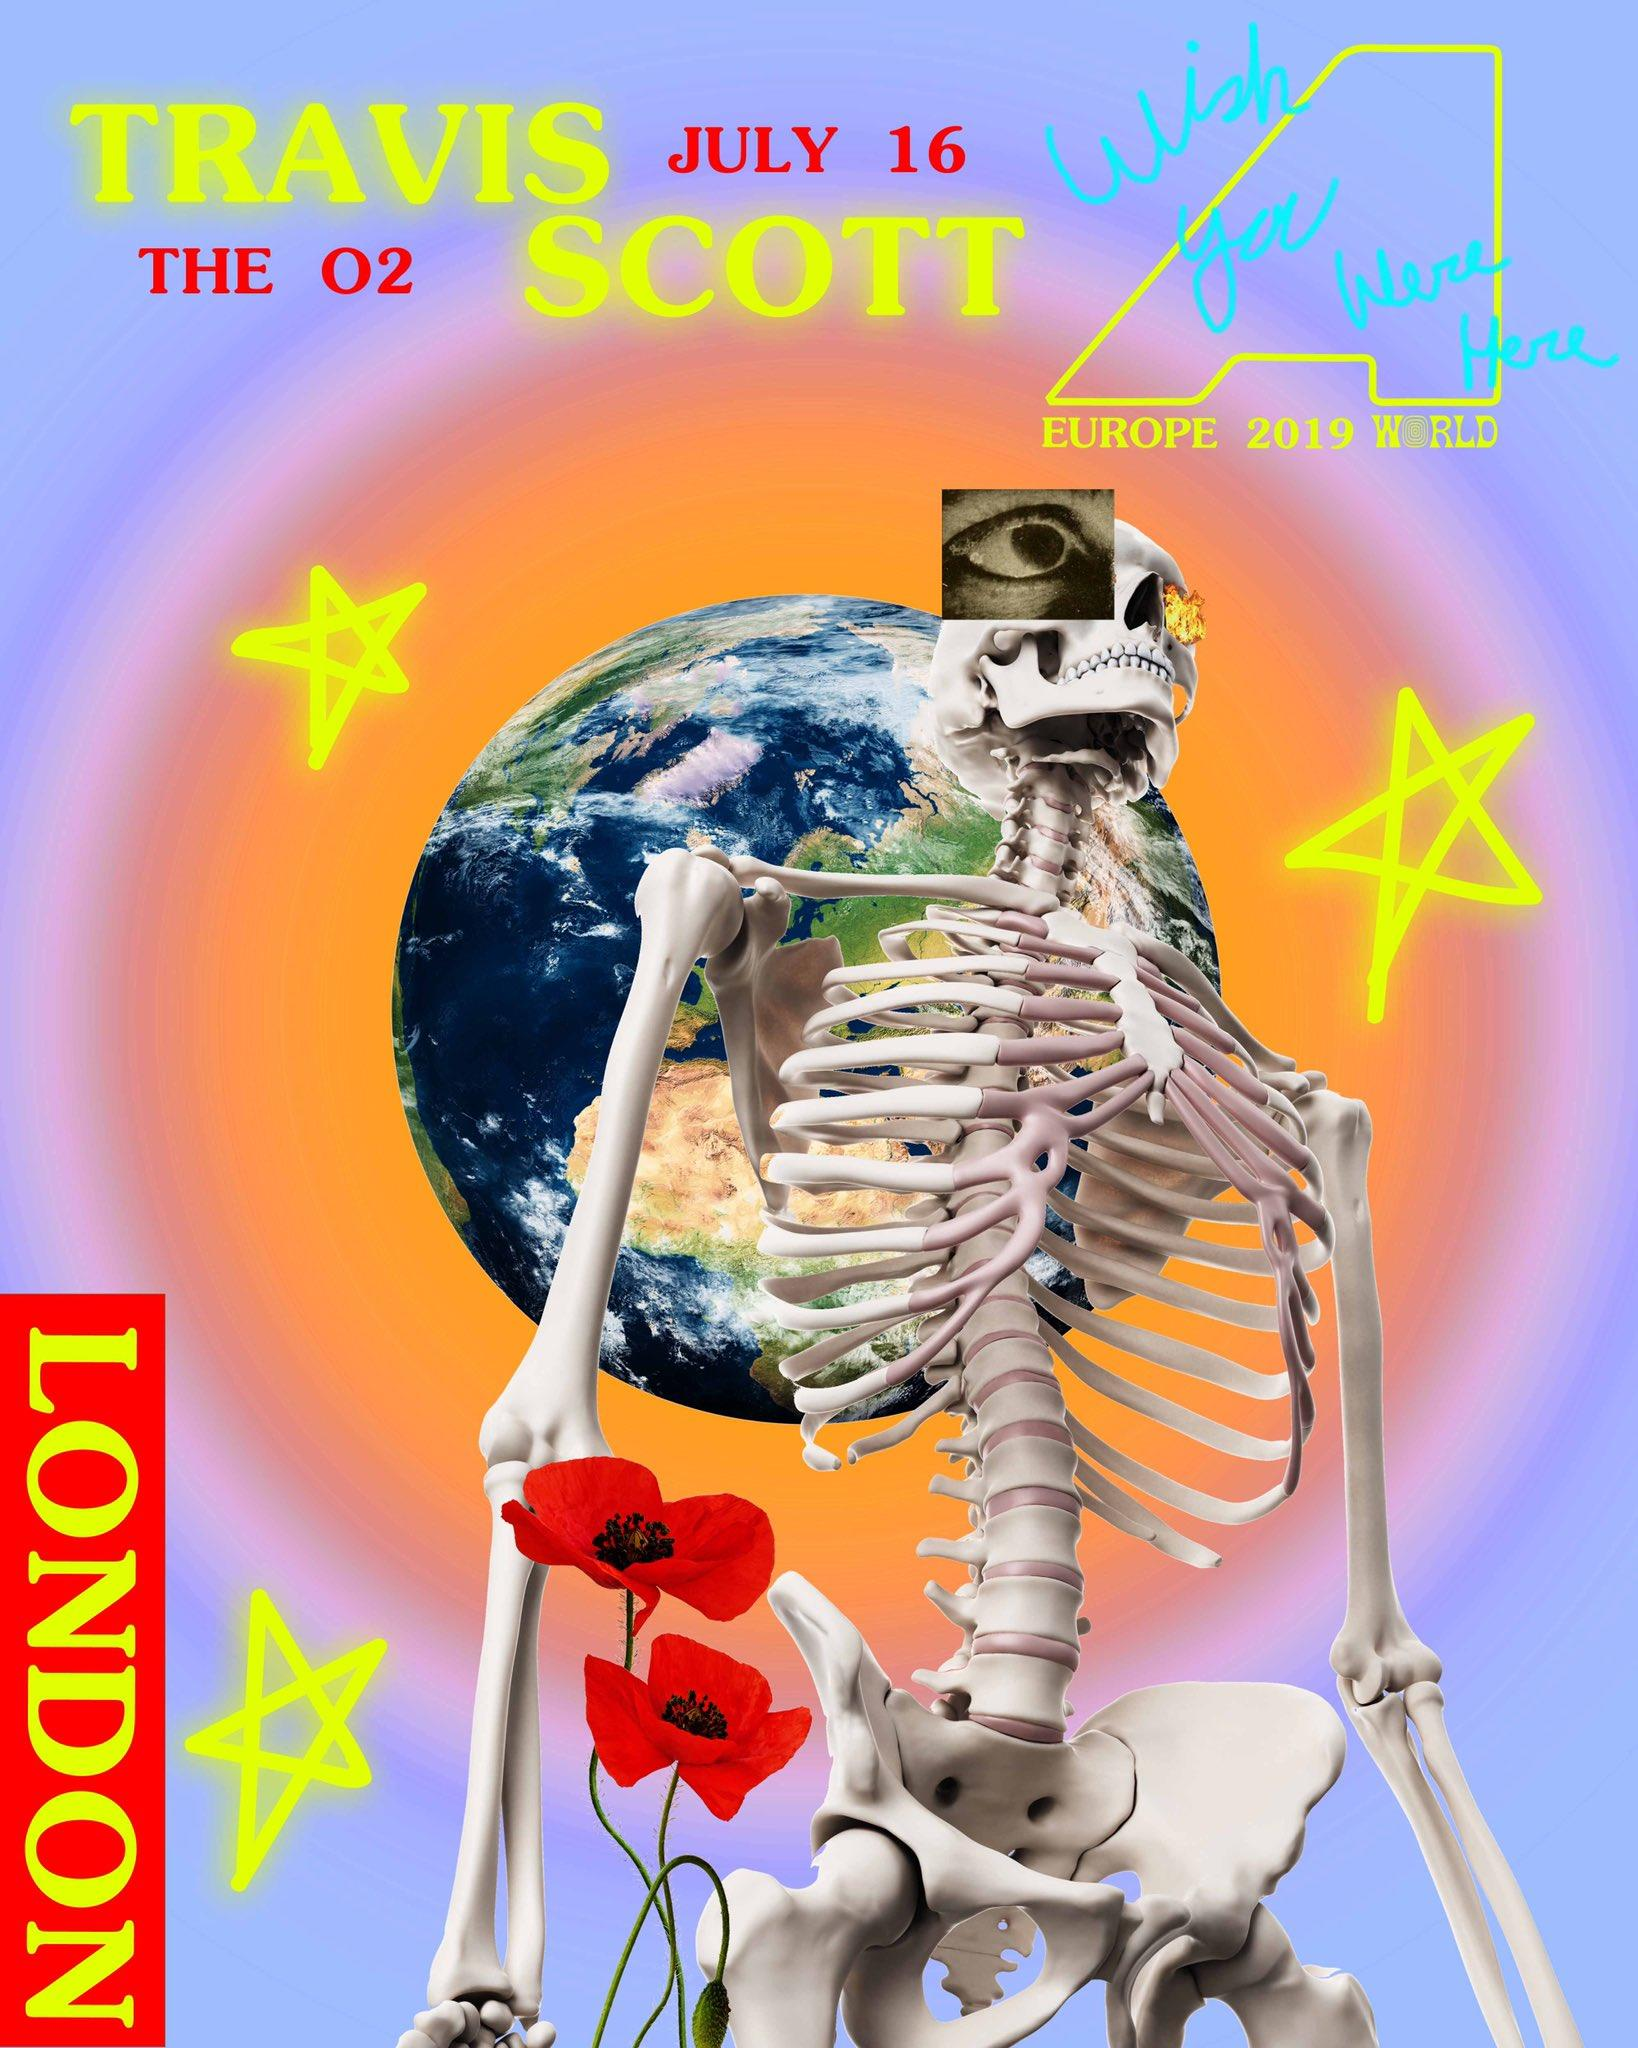 dcf431937403 Travis Scott announces one-night show at London's O2, as part of ...